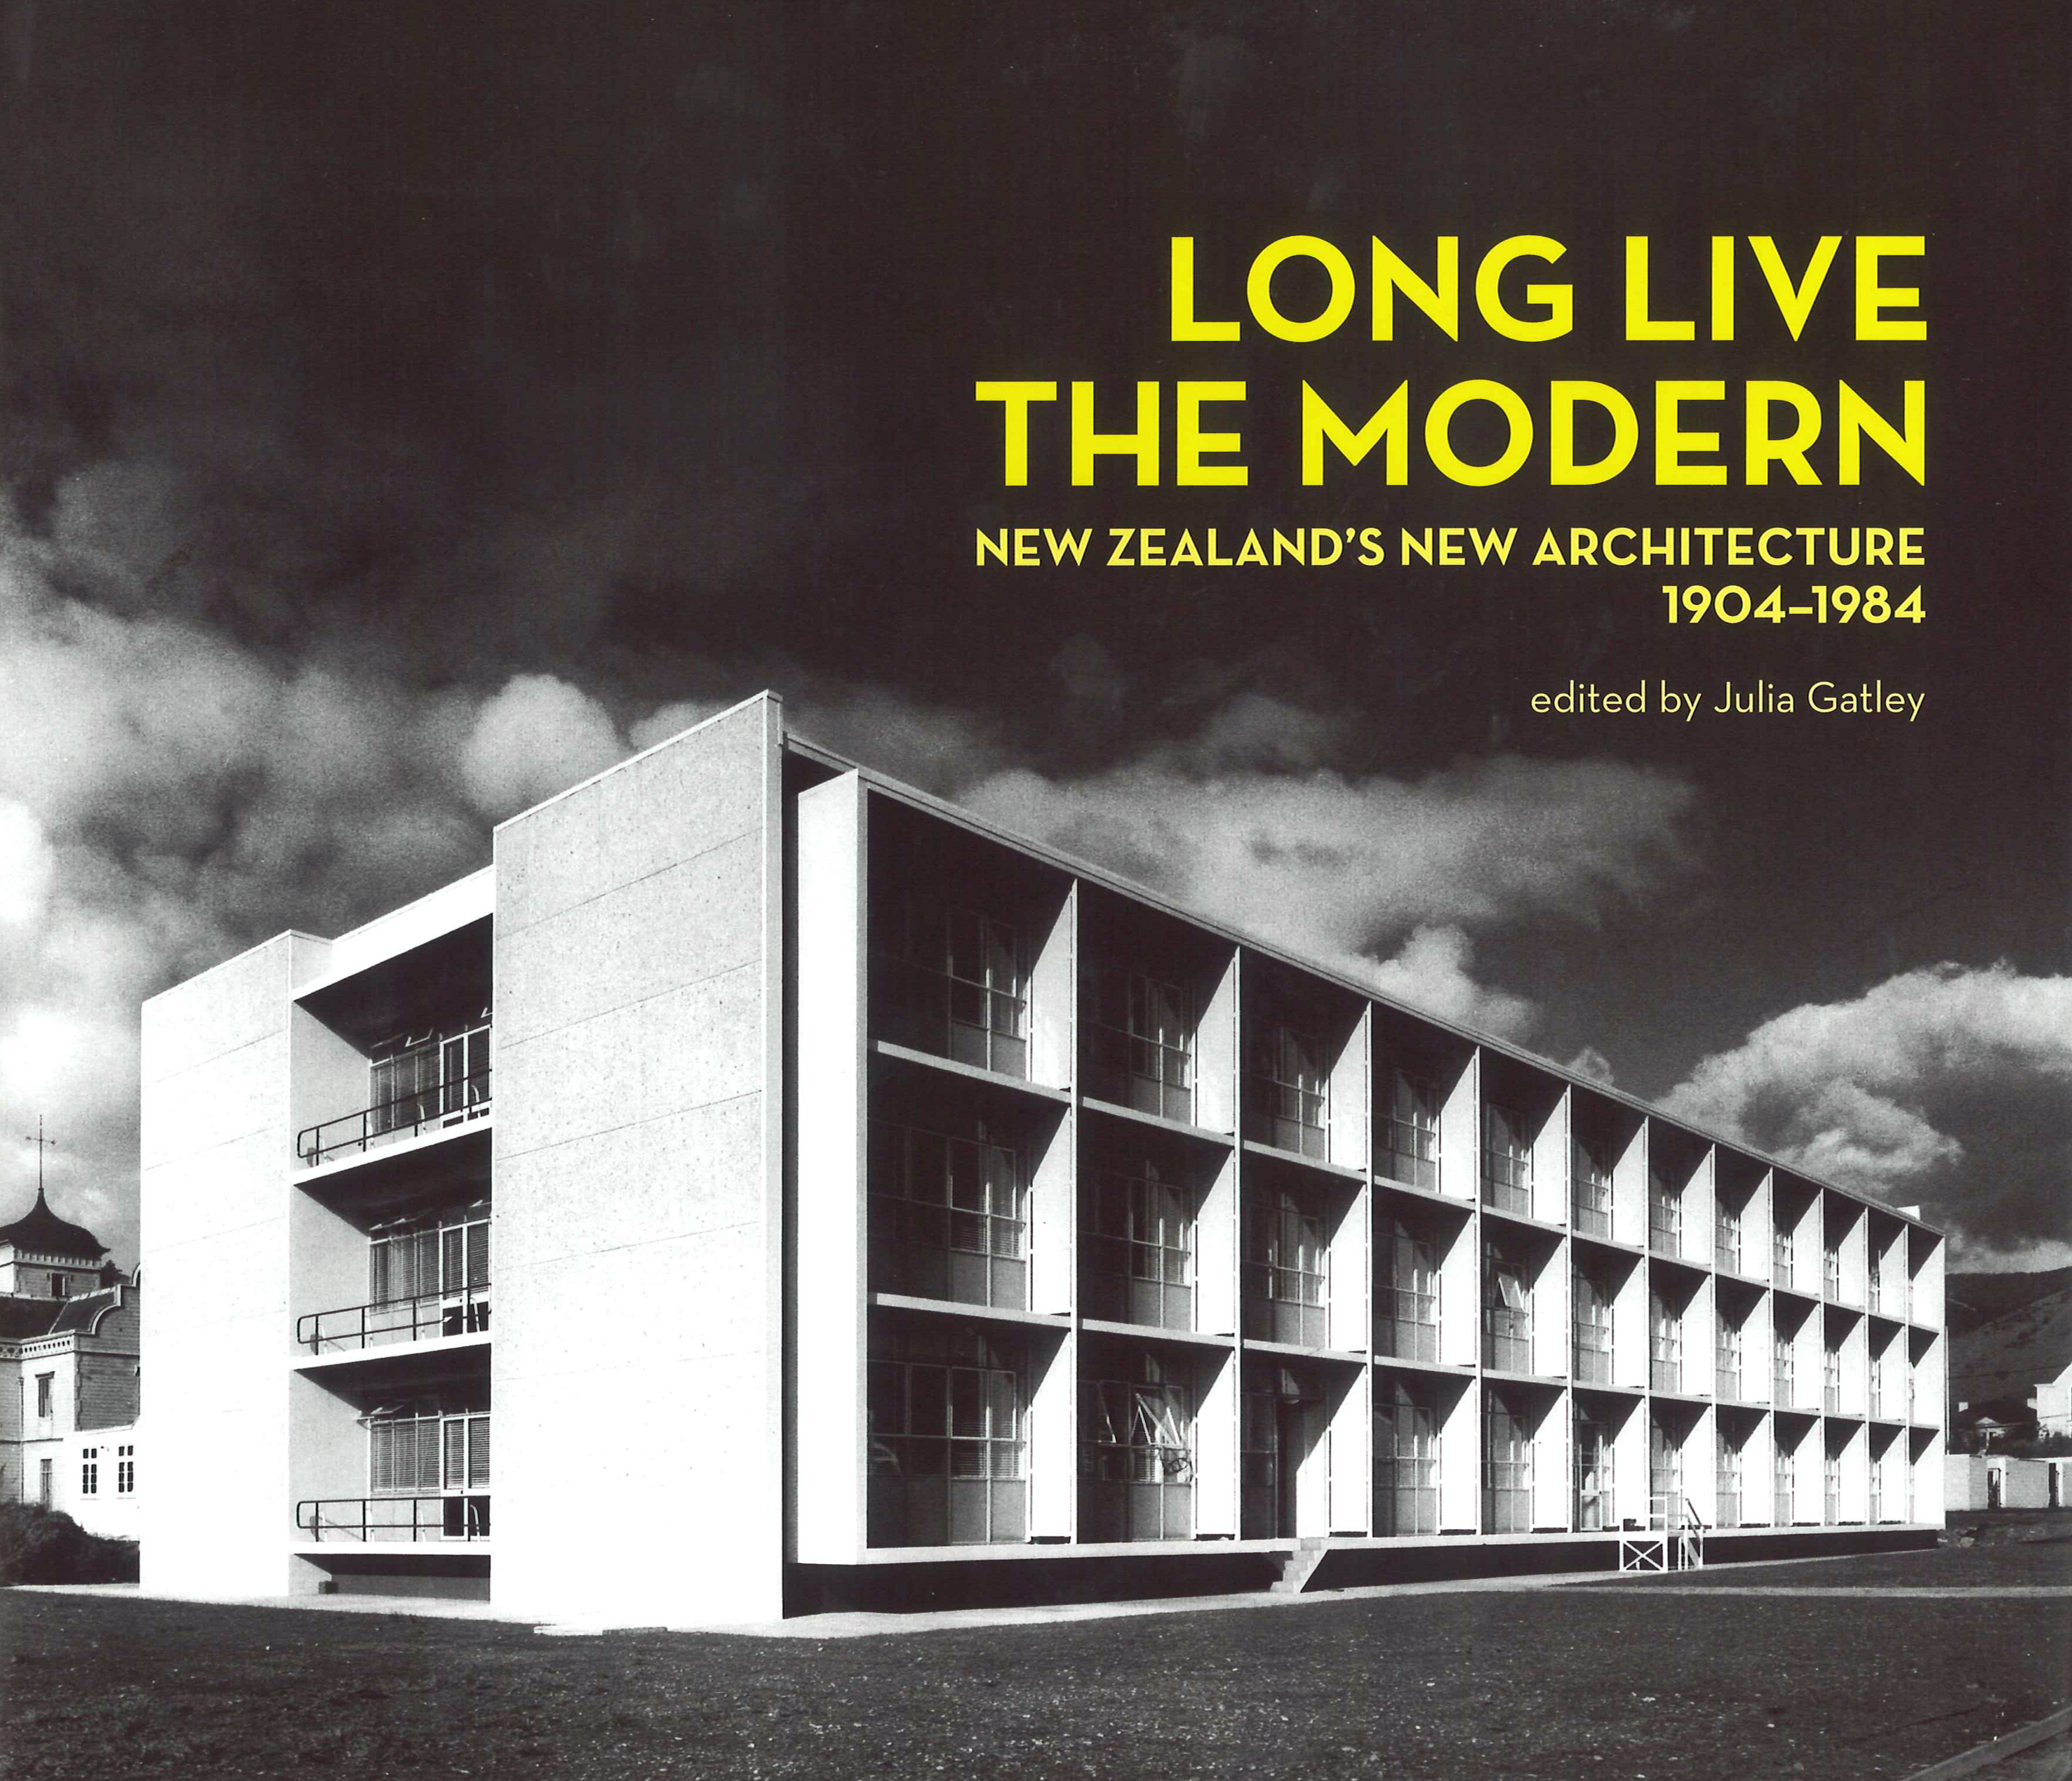 Long Live the Modern